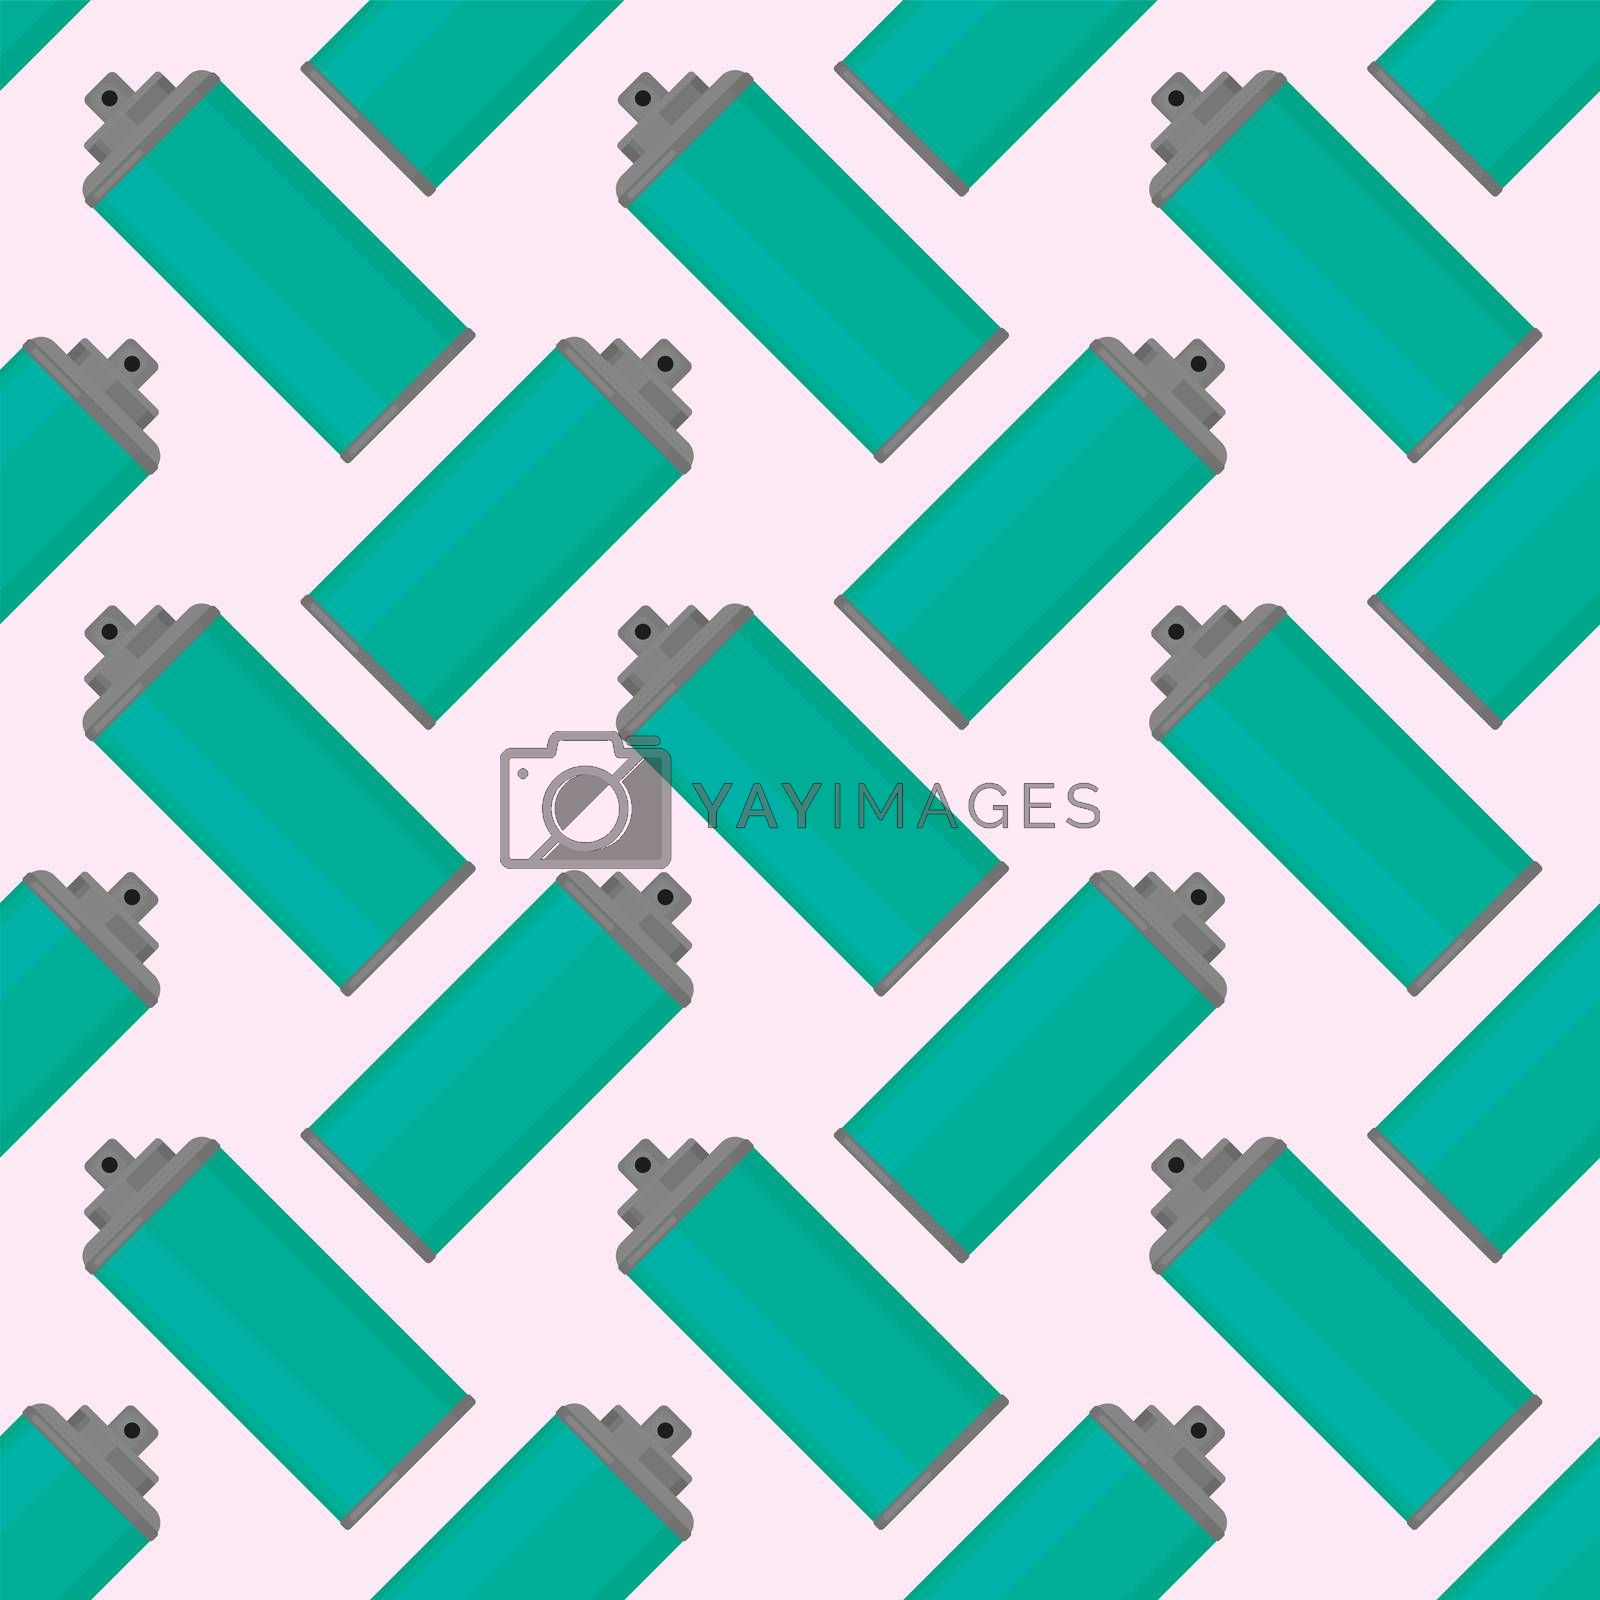 Sprays in can pattern , illustration, vector on white background